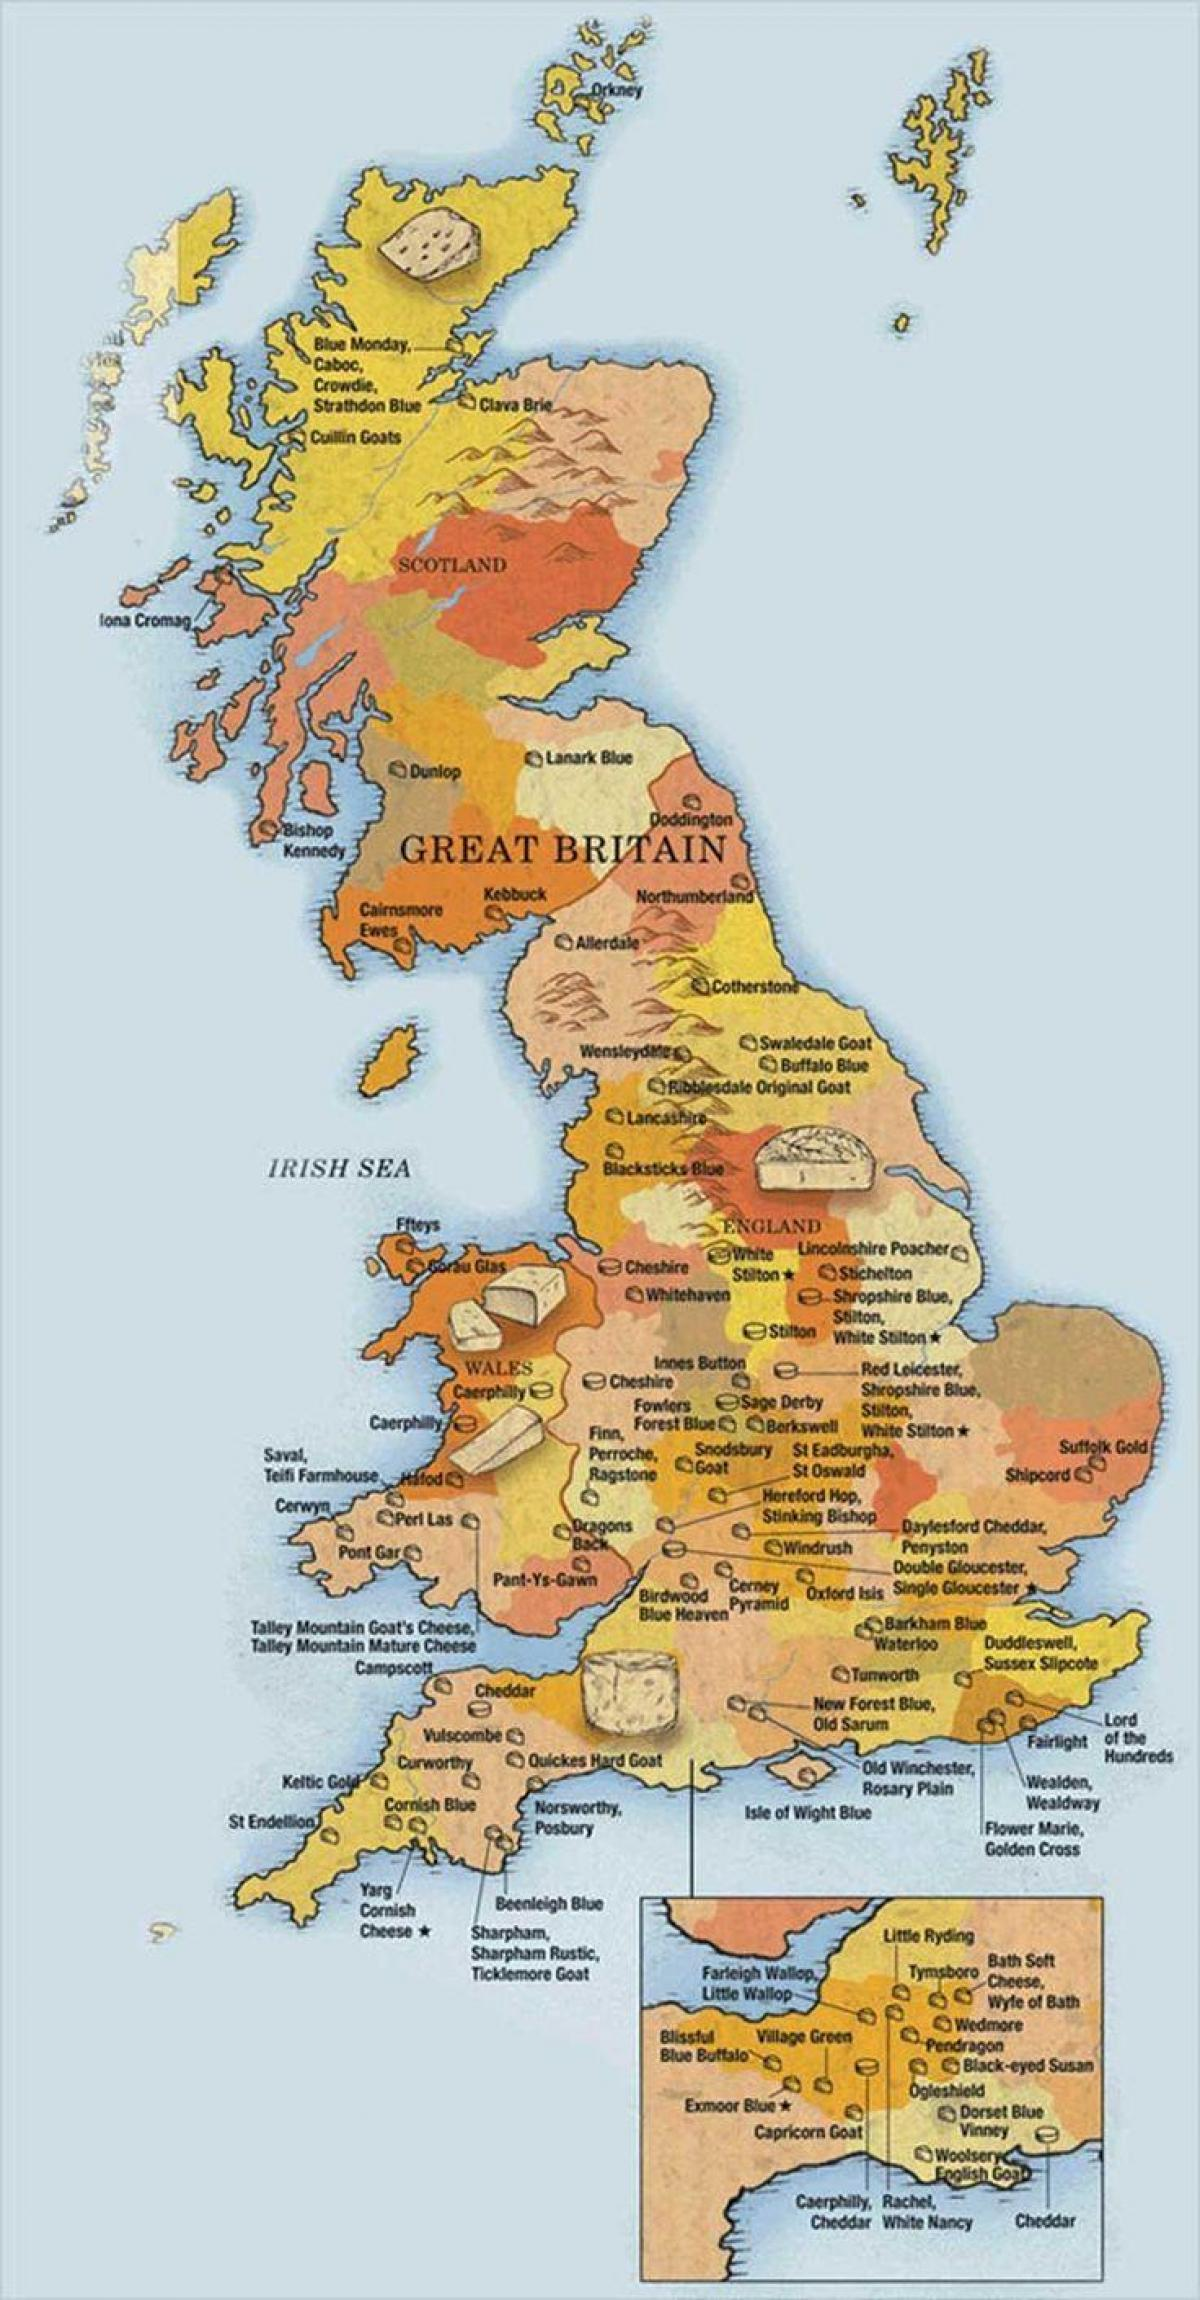 show me a map of Great Britain